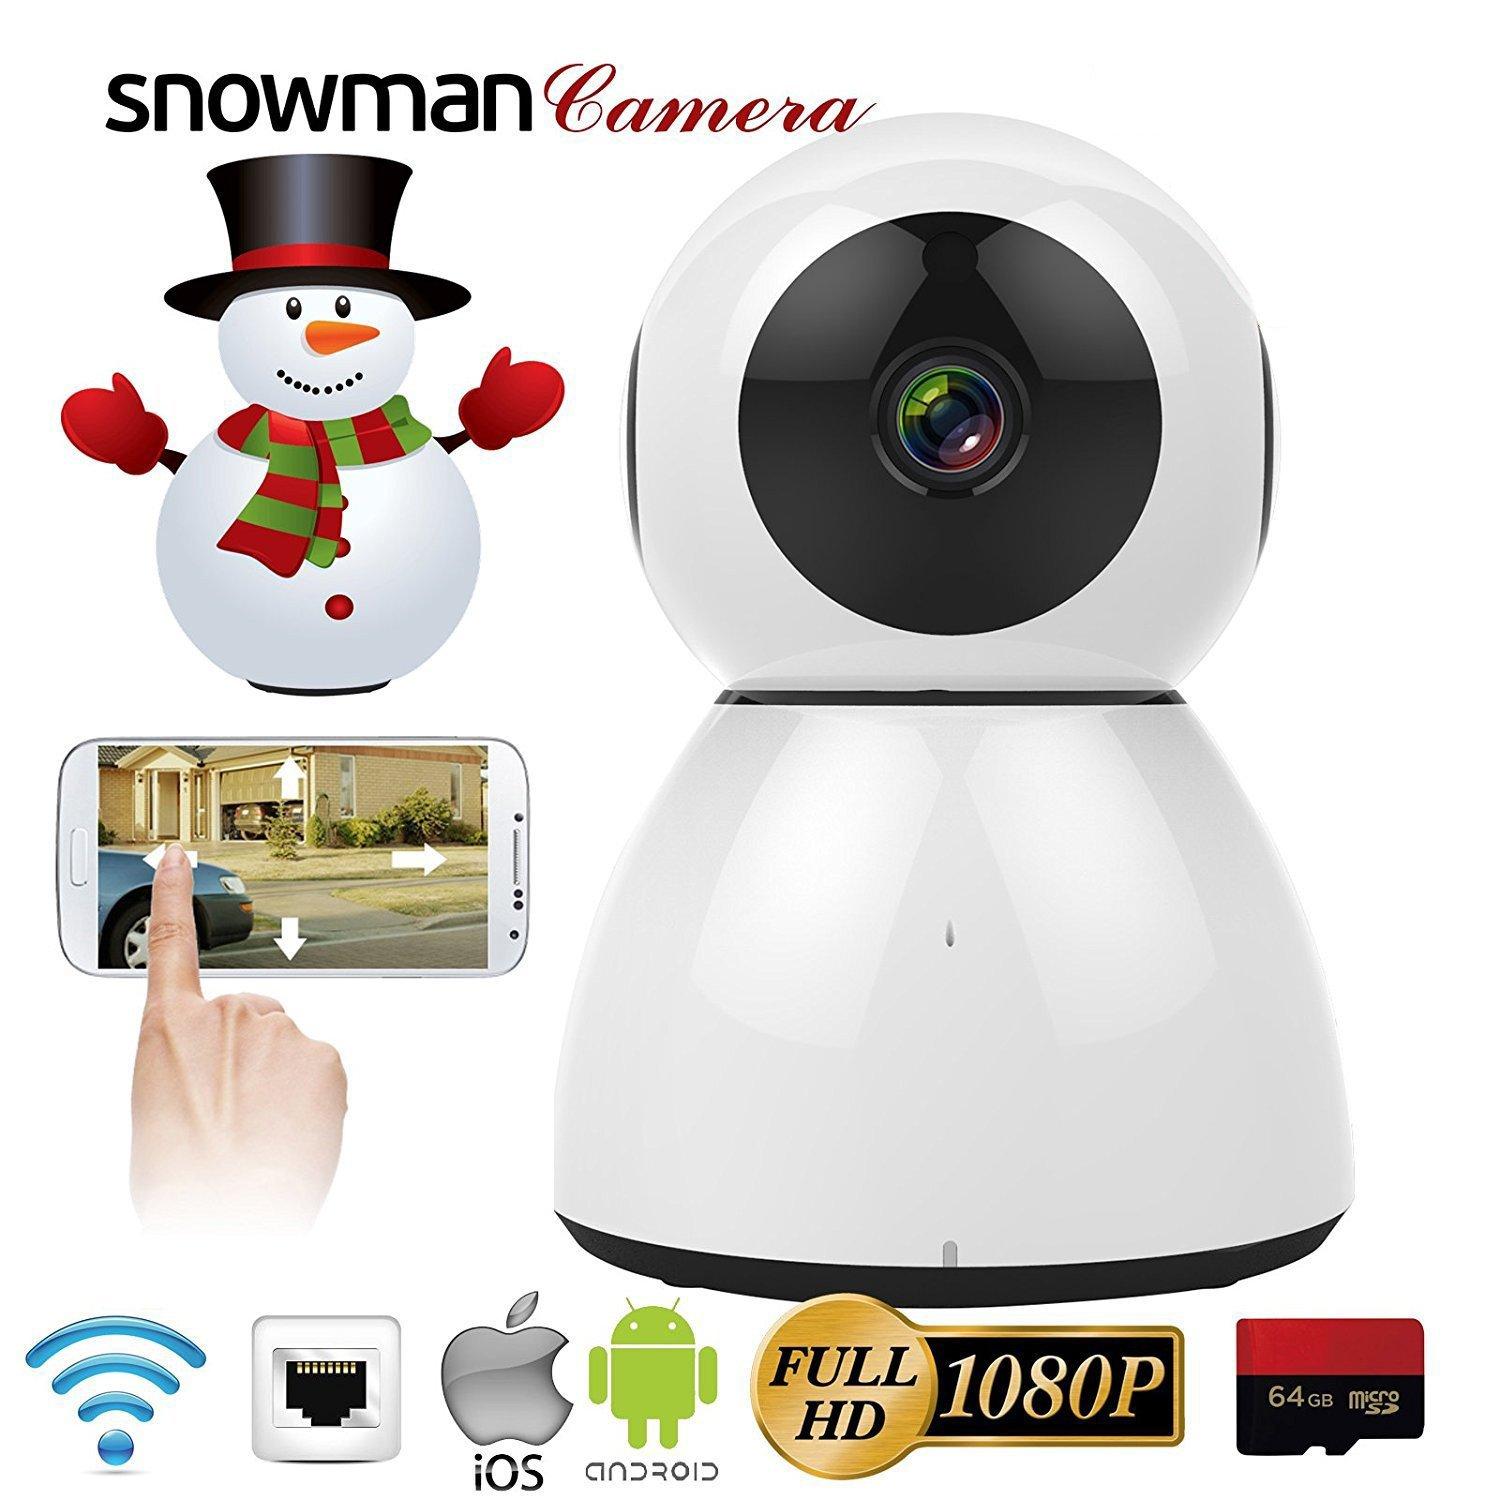 Home Security Camera, HD 1080P WiFi IP Camera, 2 Way Audio,Night Vision, Baby, Pet Security (White) by VTC (Image #1)